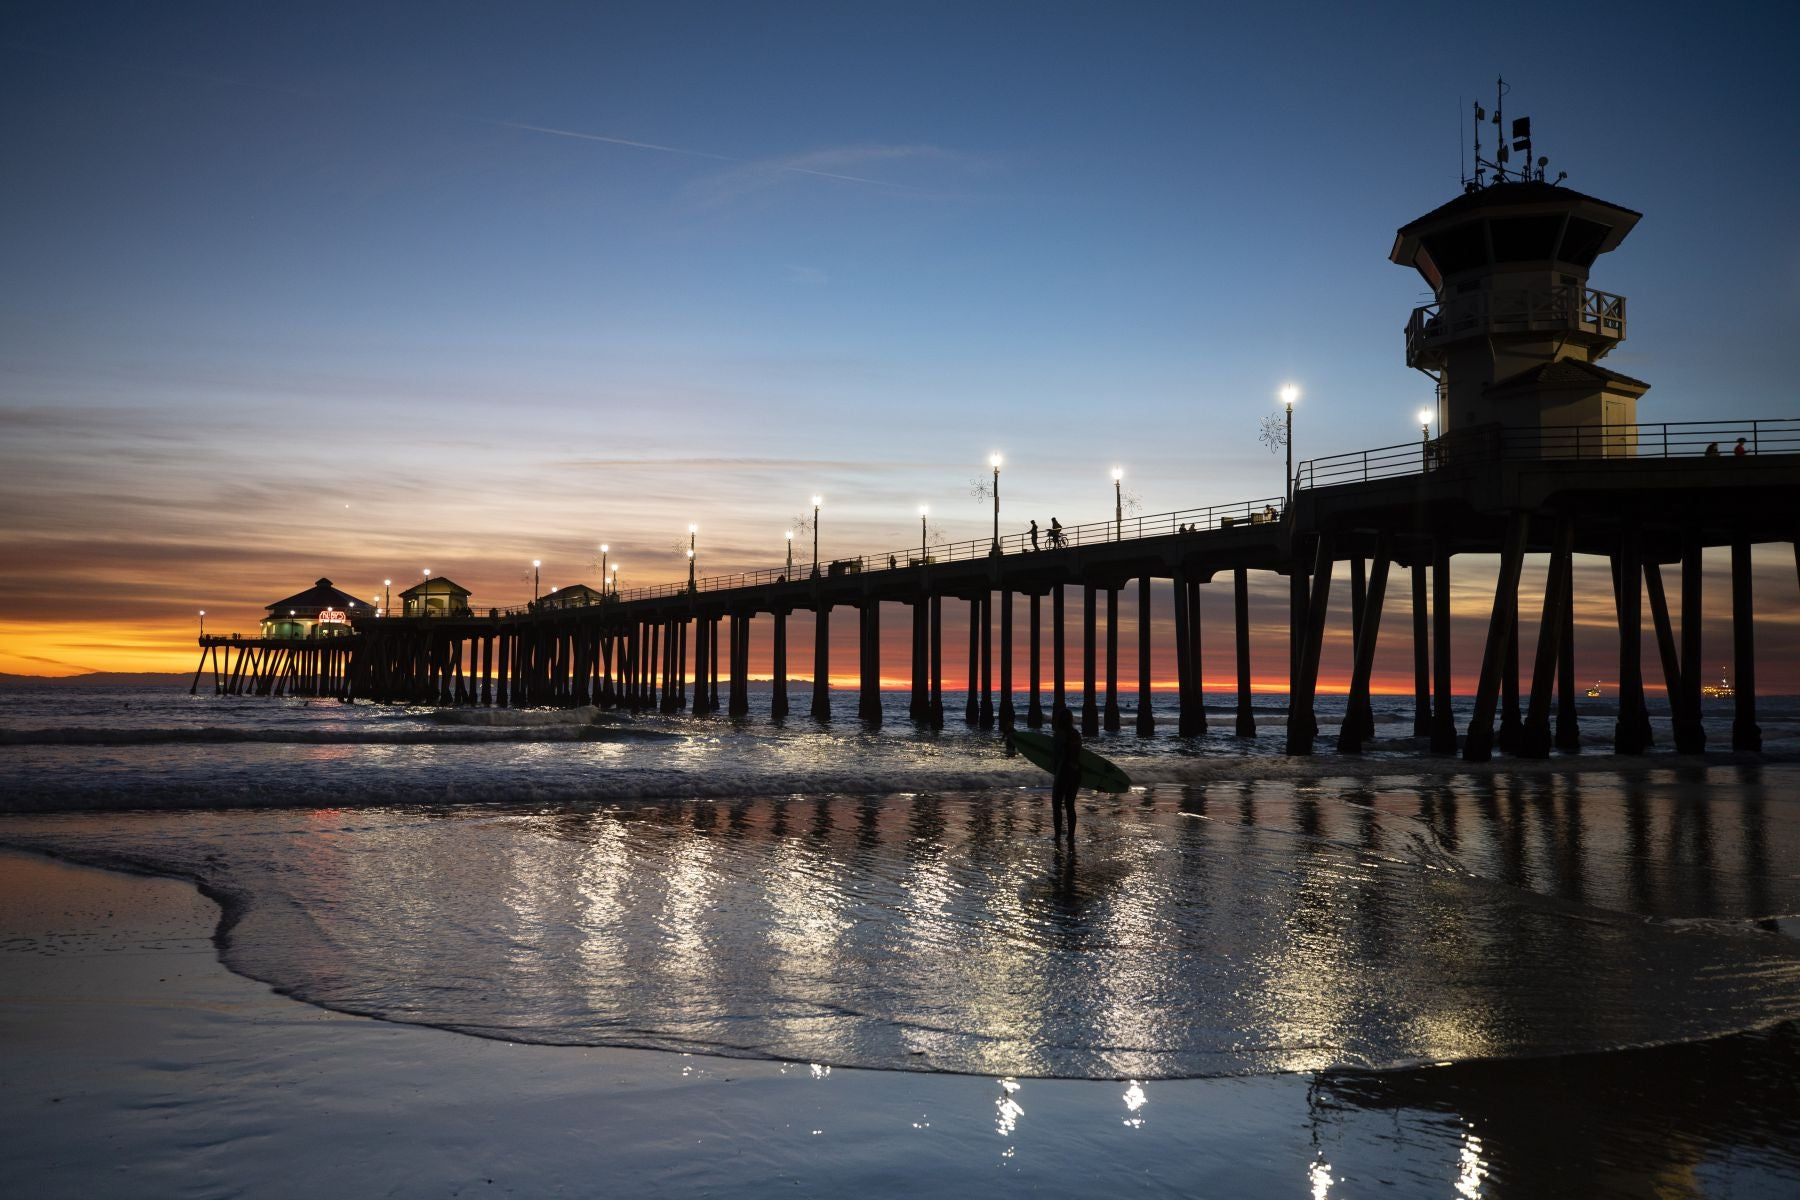 Silhouette Of Surfer At Huntington Beach Pier At Sunset California U Photo Printing Pros